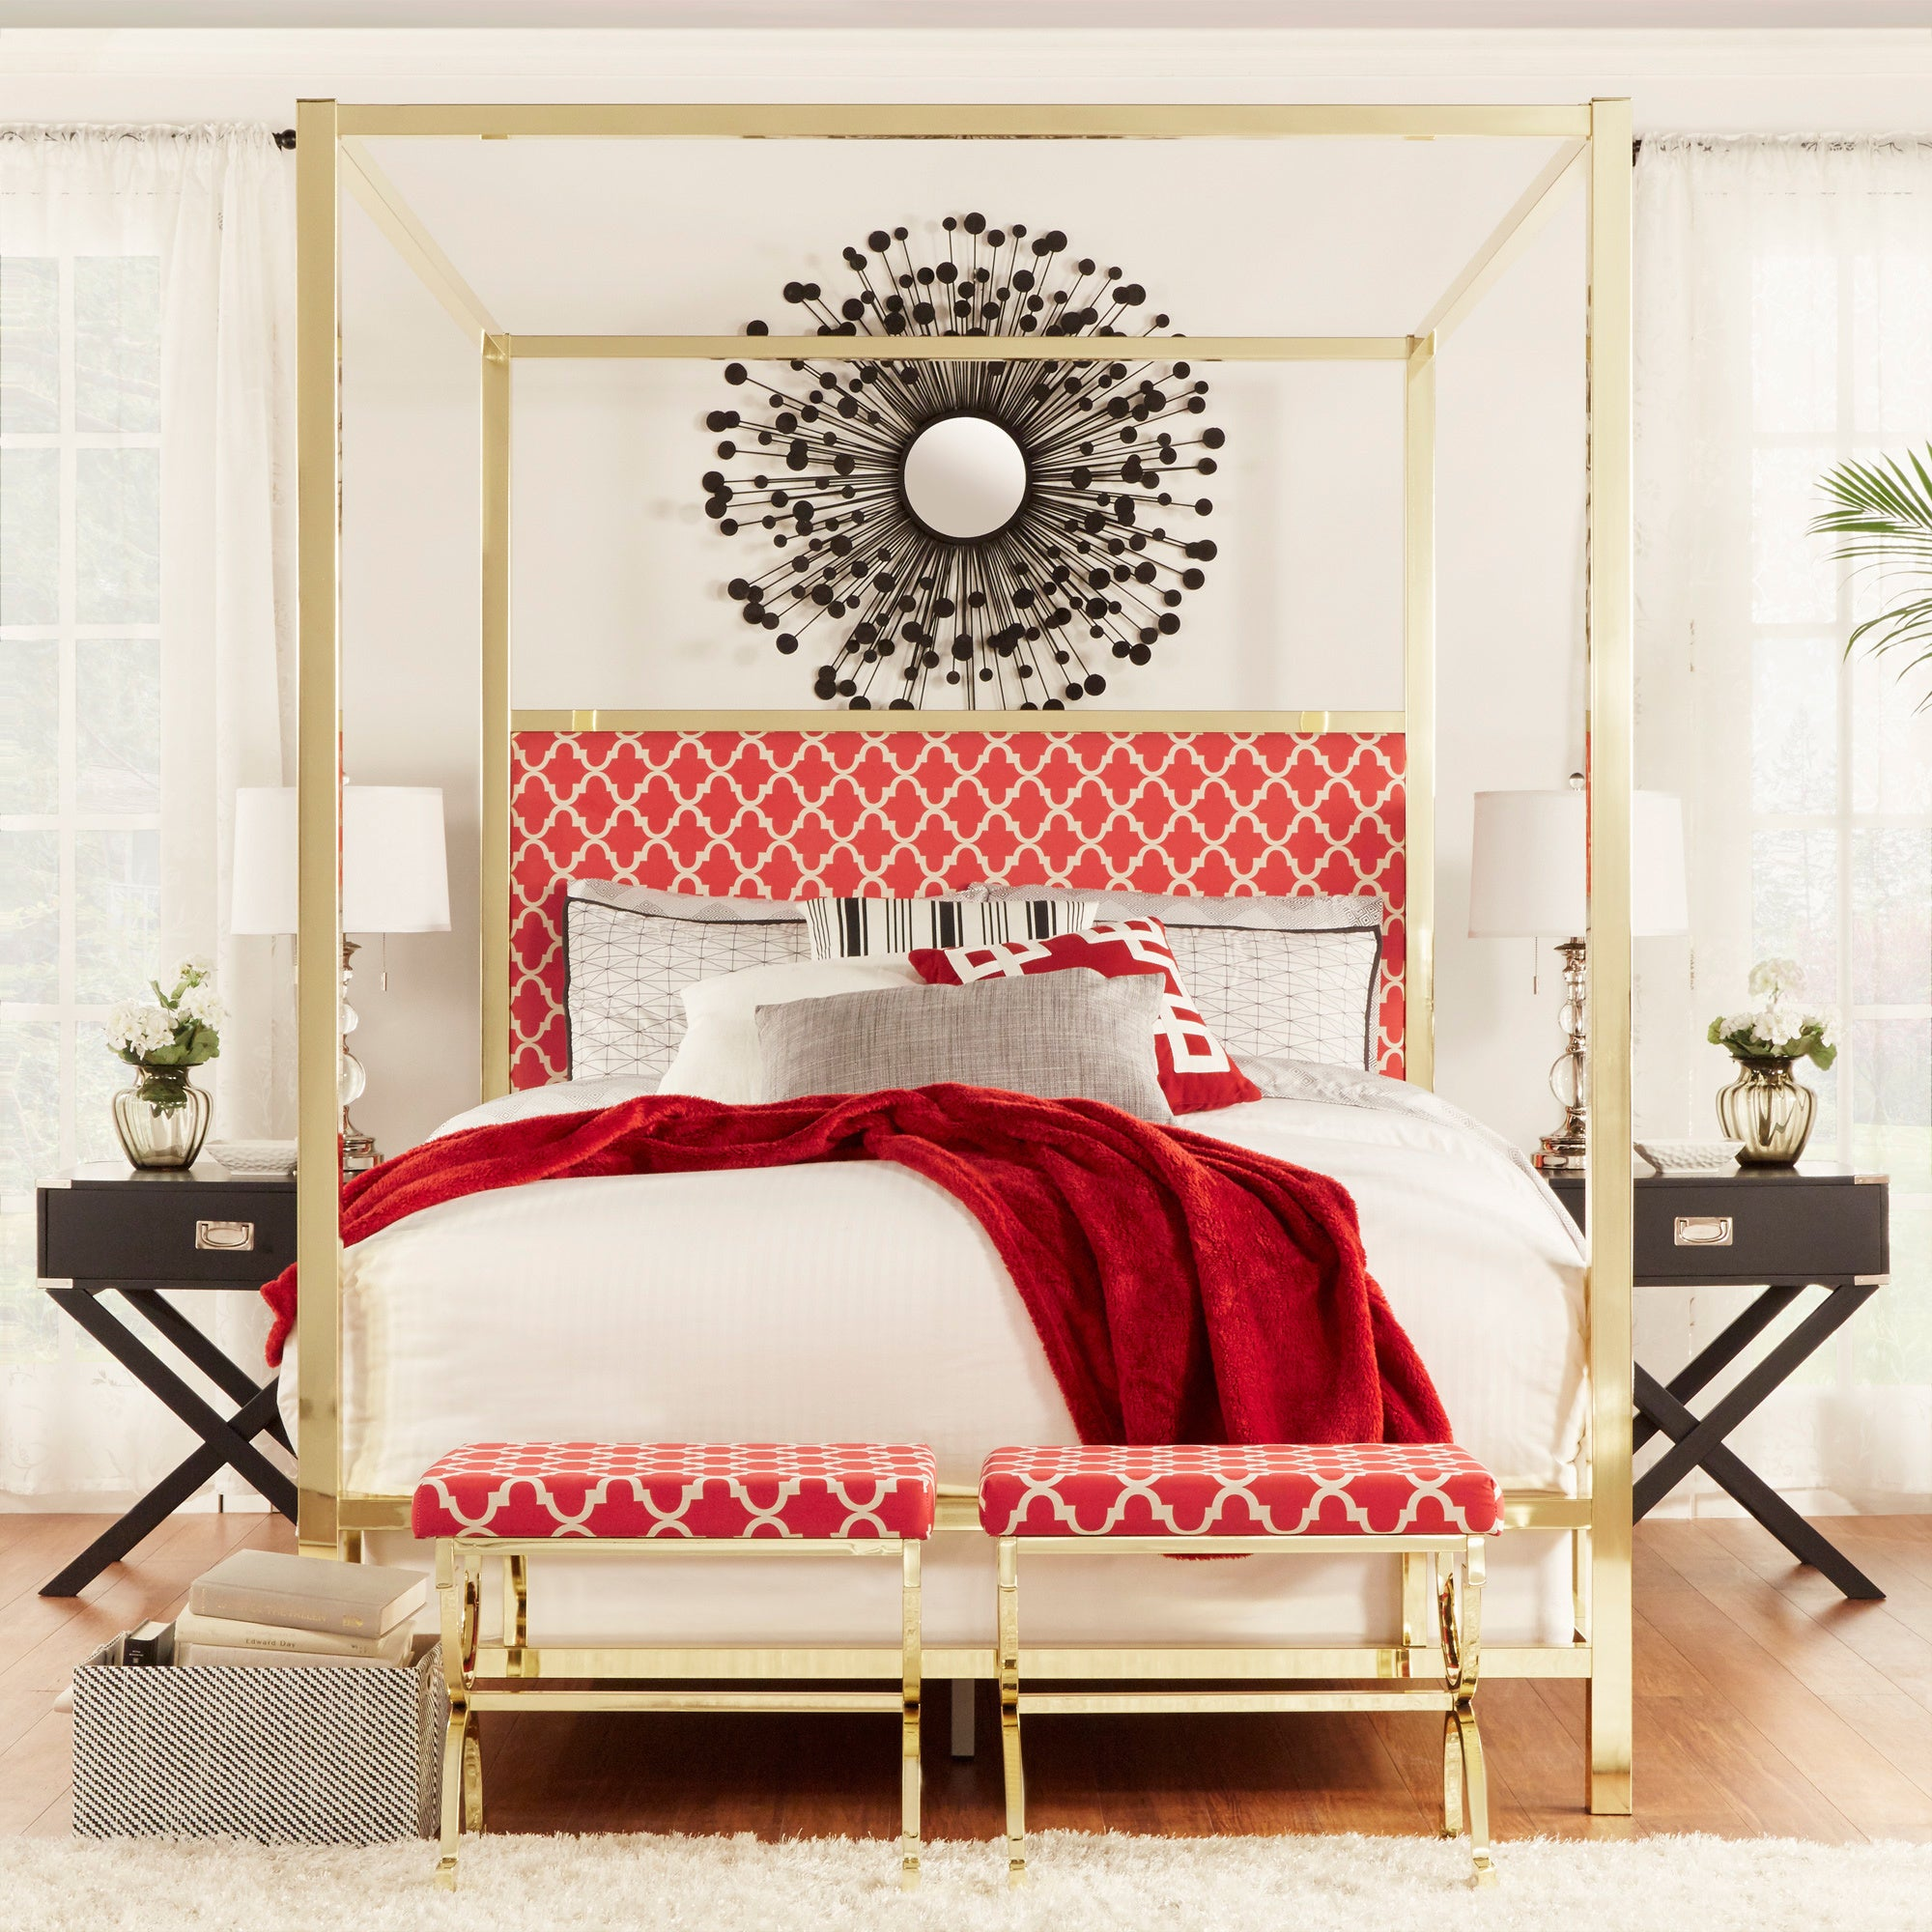 Solivita-Full-sized-Canopy-Gold-Metal-Poster-Bed-